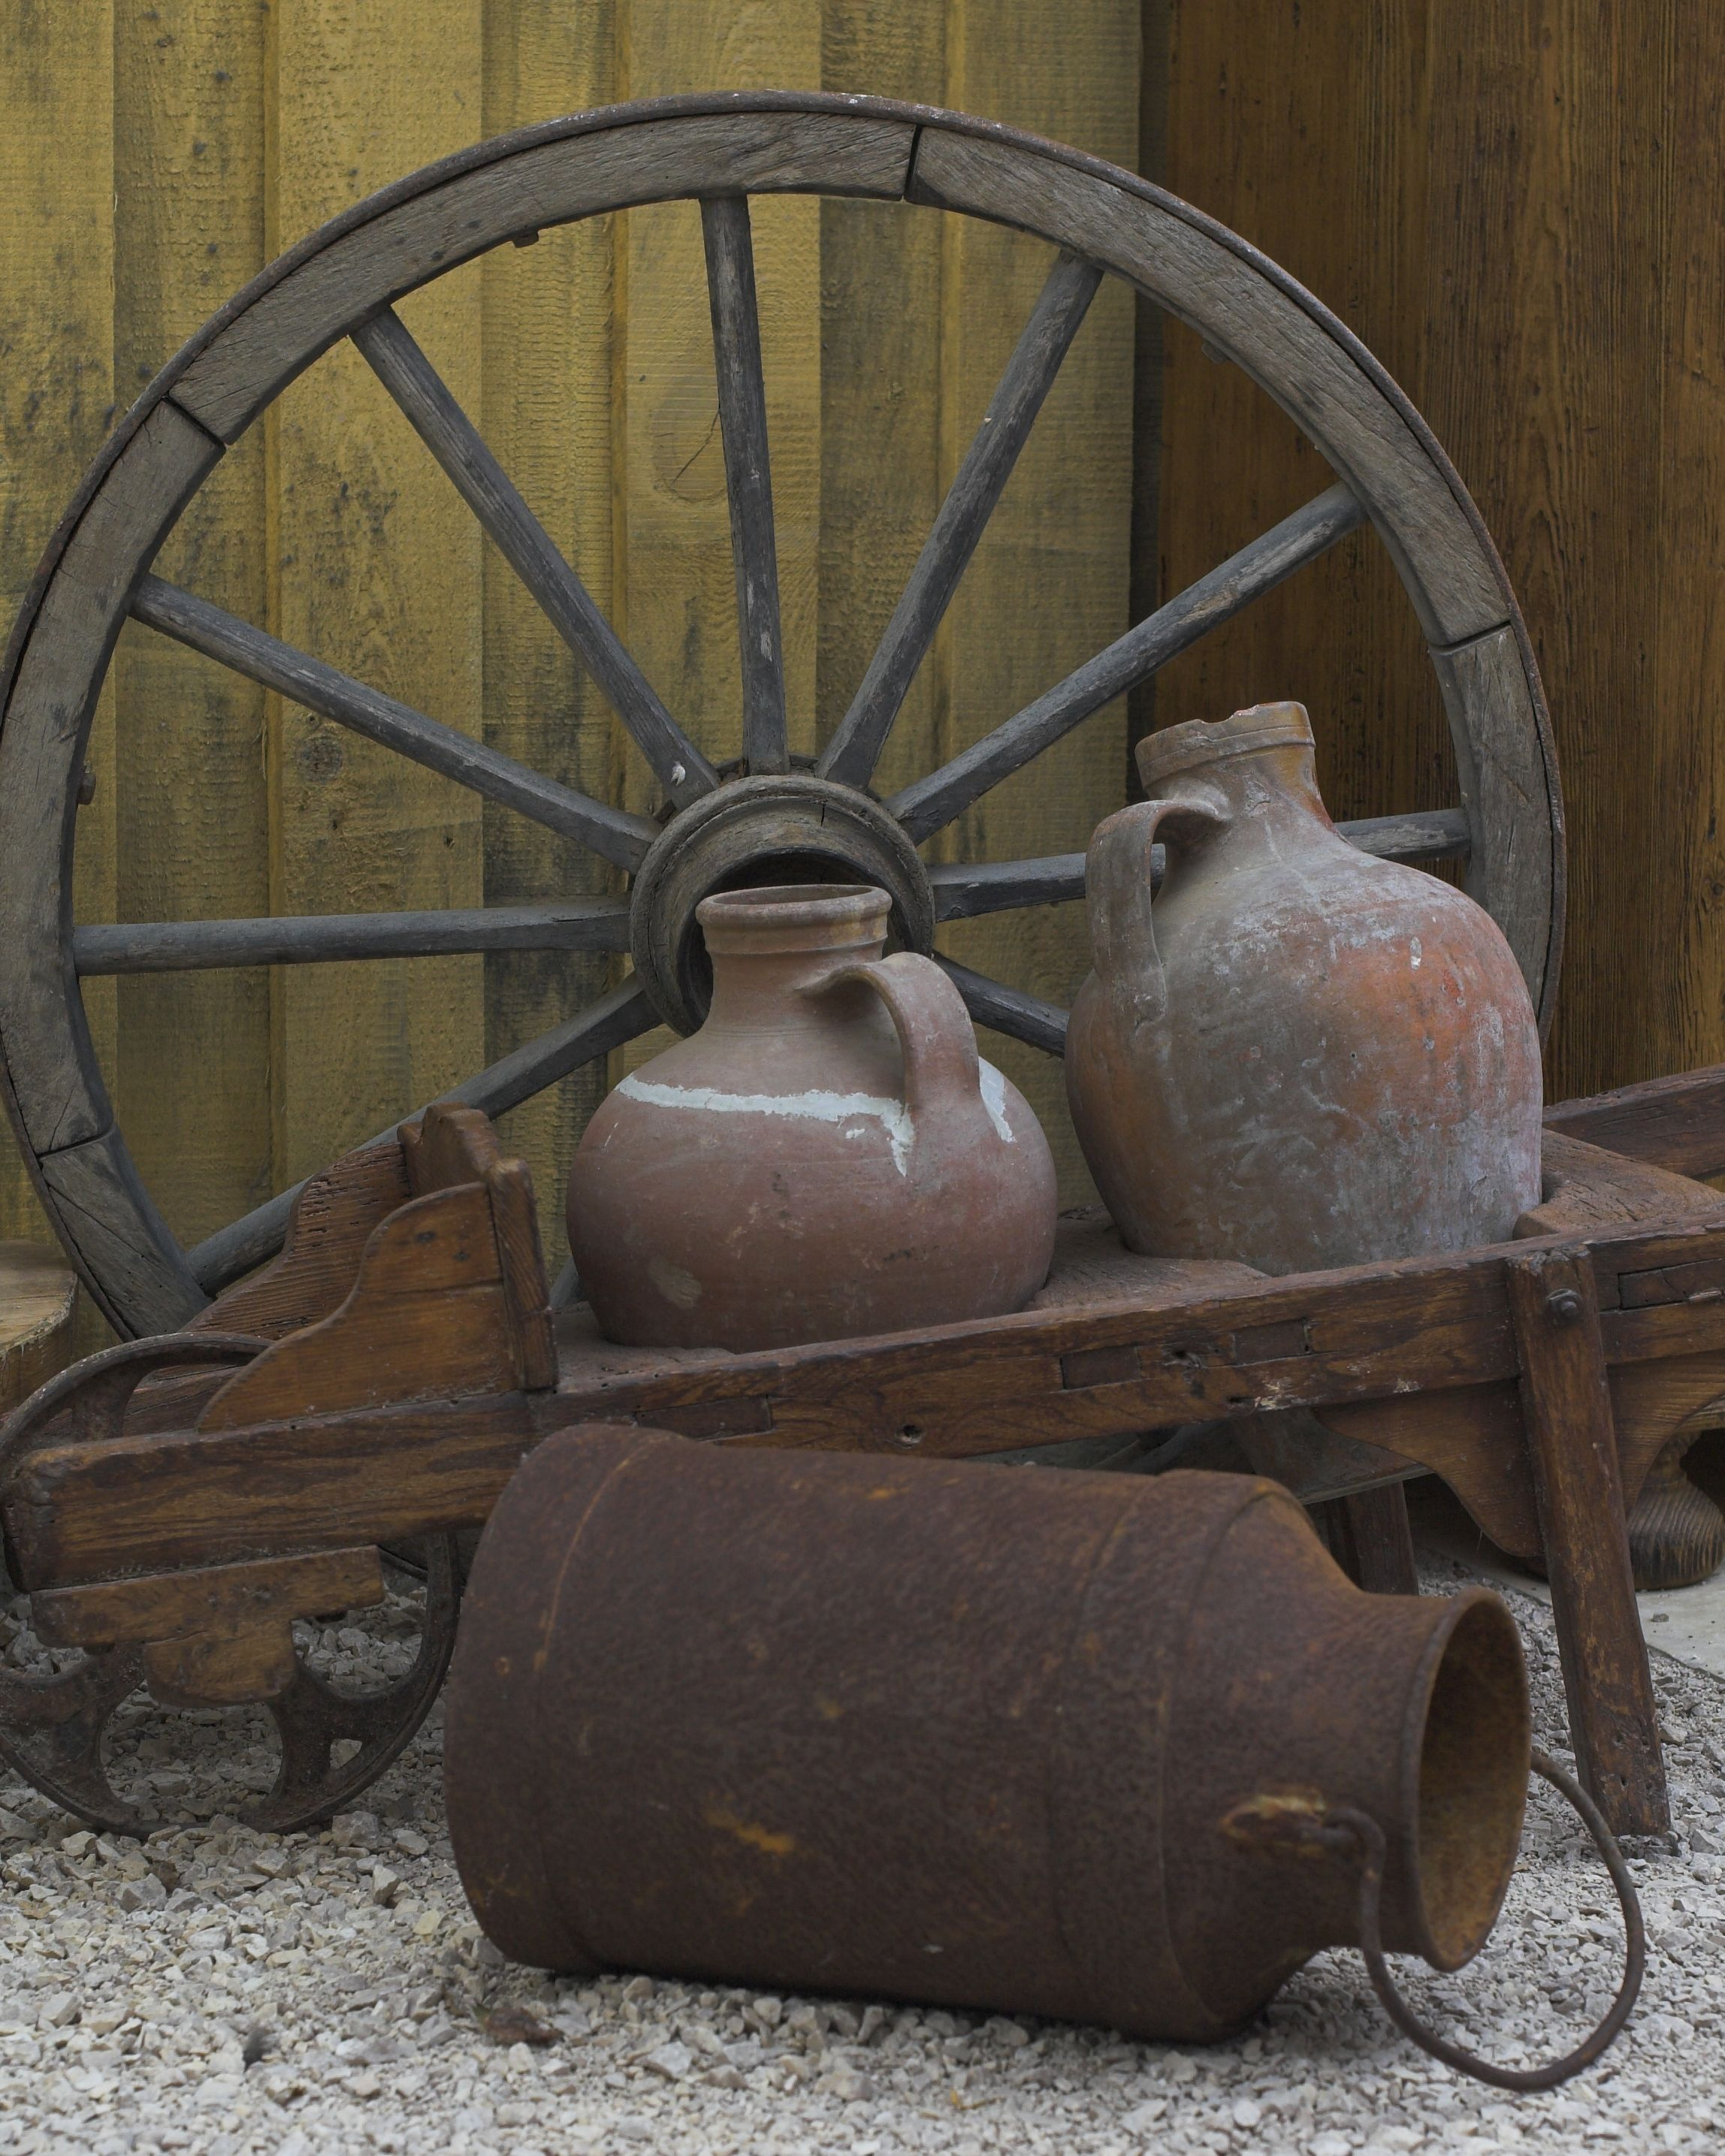 Rustic Outdoor Decoration Wagon Wheel